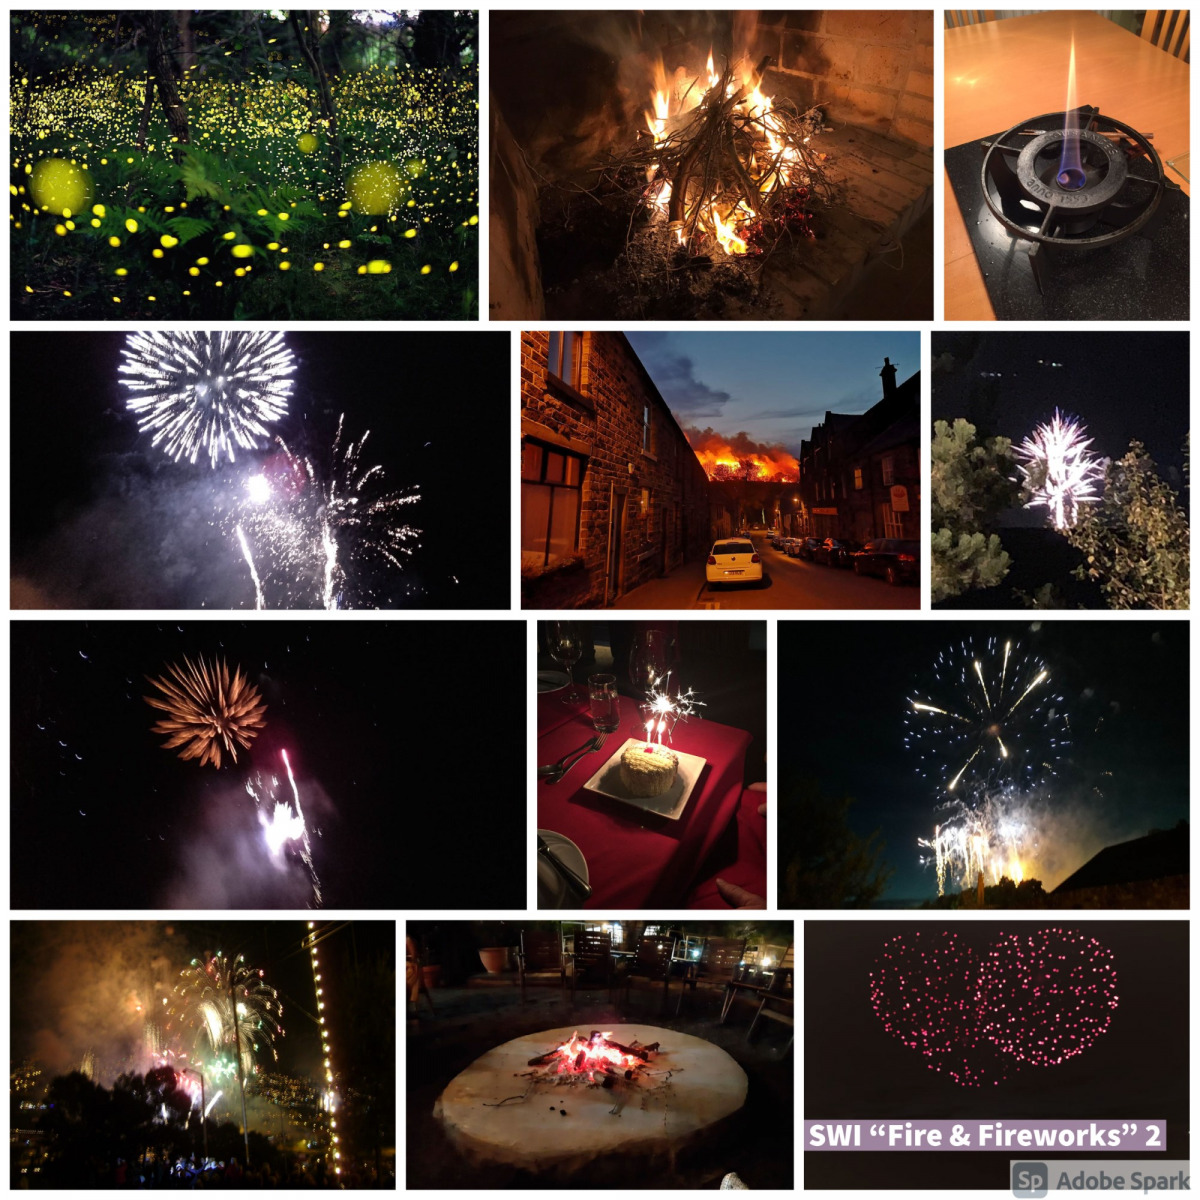 SWI-Fire-Fireworks-part2